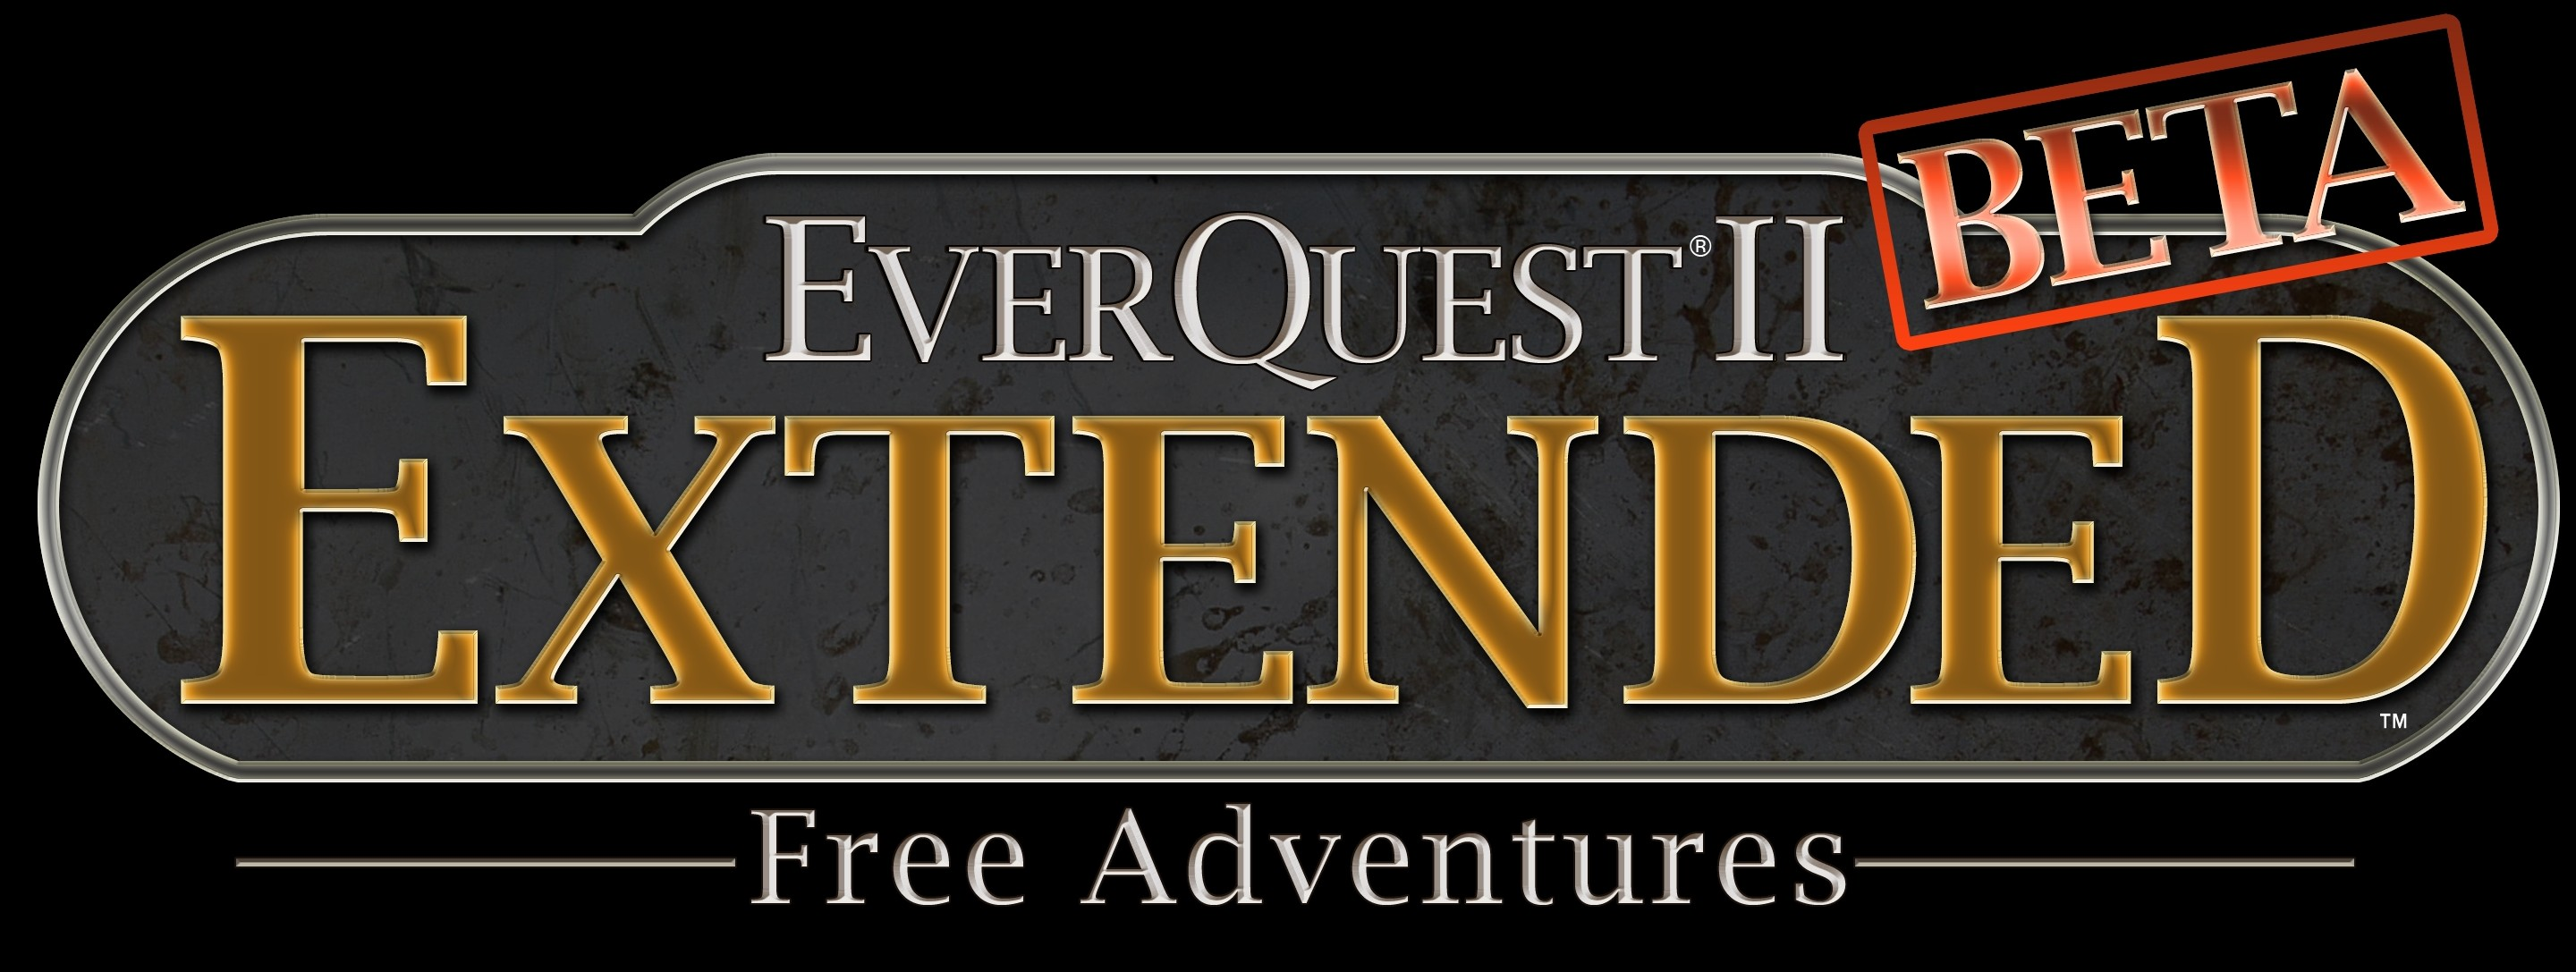 Everquest spell slots / Casino hollywood monterrey vacantes